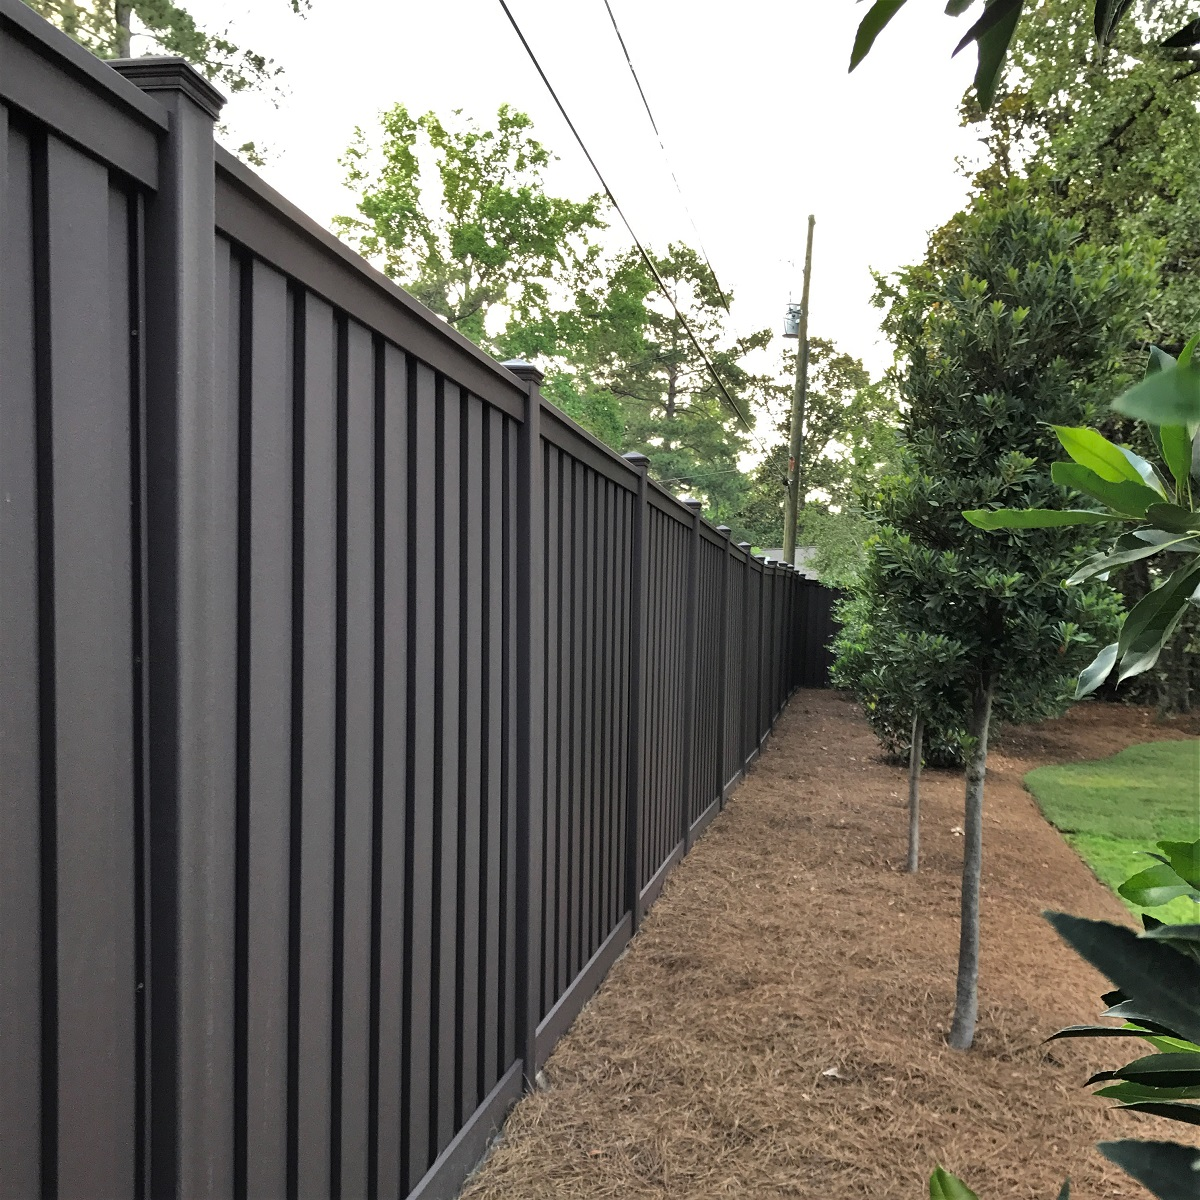 An 8 ft. tall Trex privacy Fence in a South Carolina residence's backyard. Composite Fencing